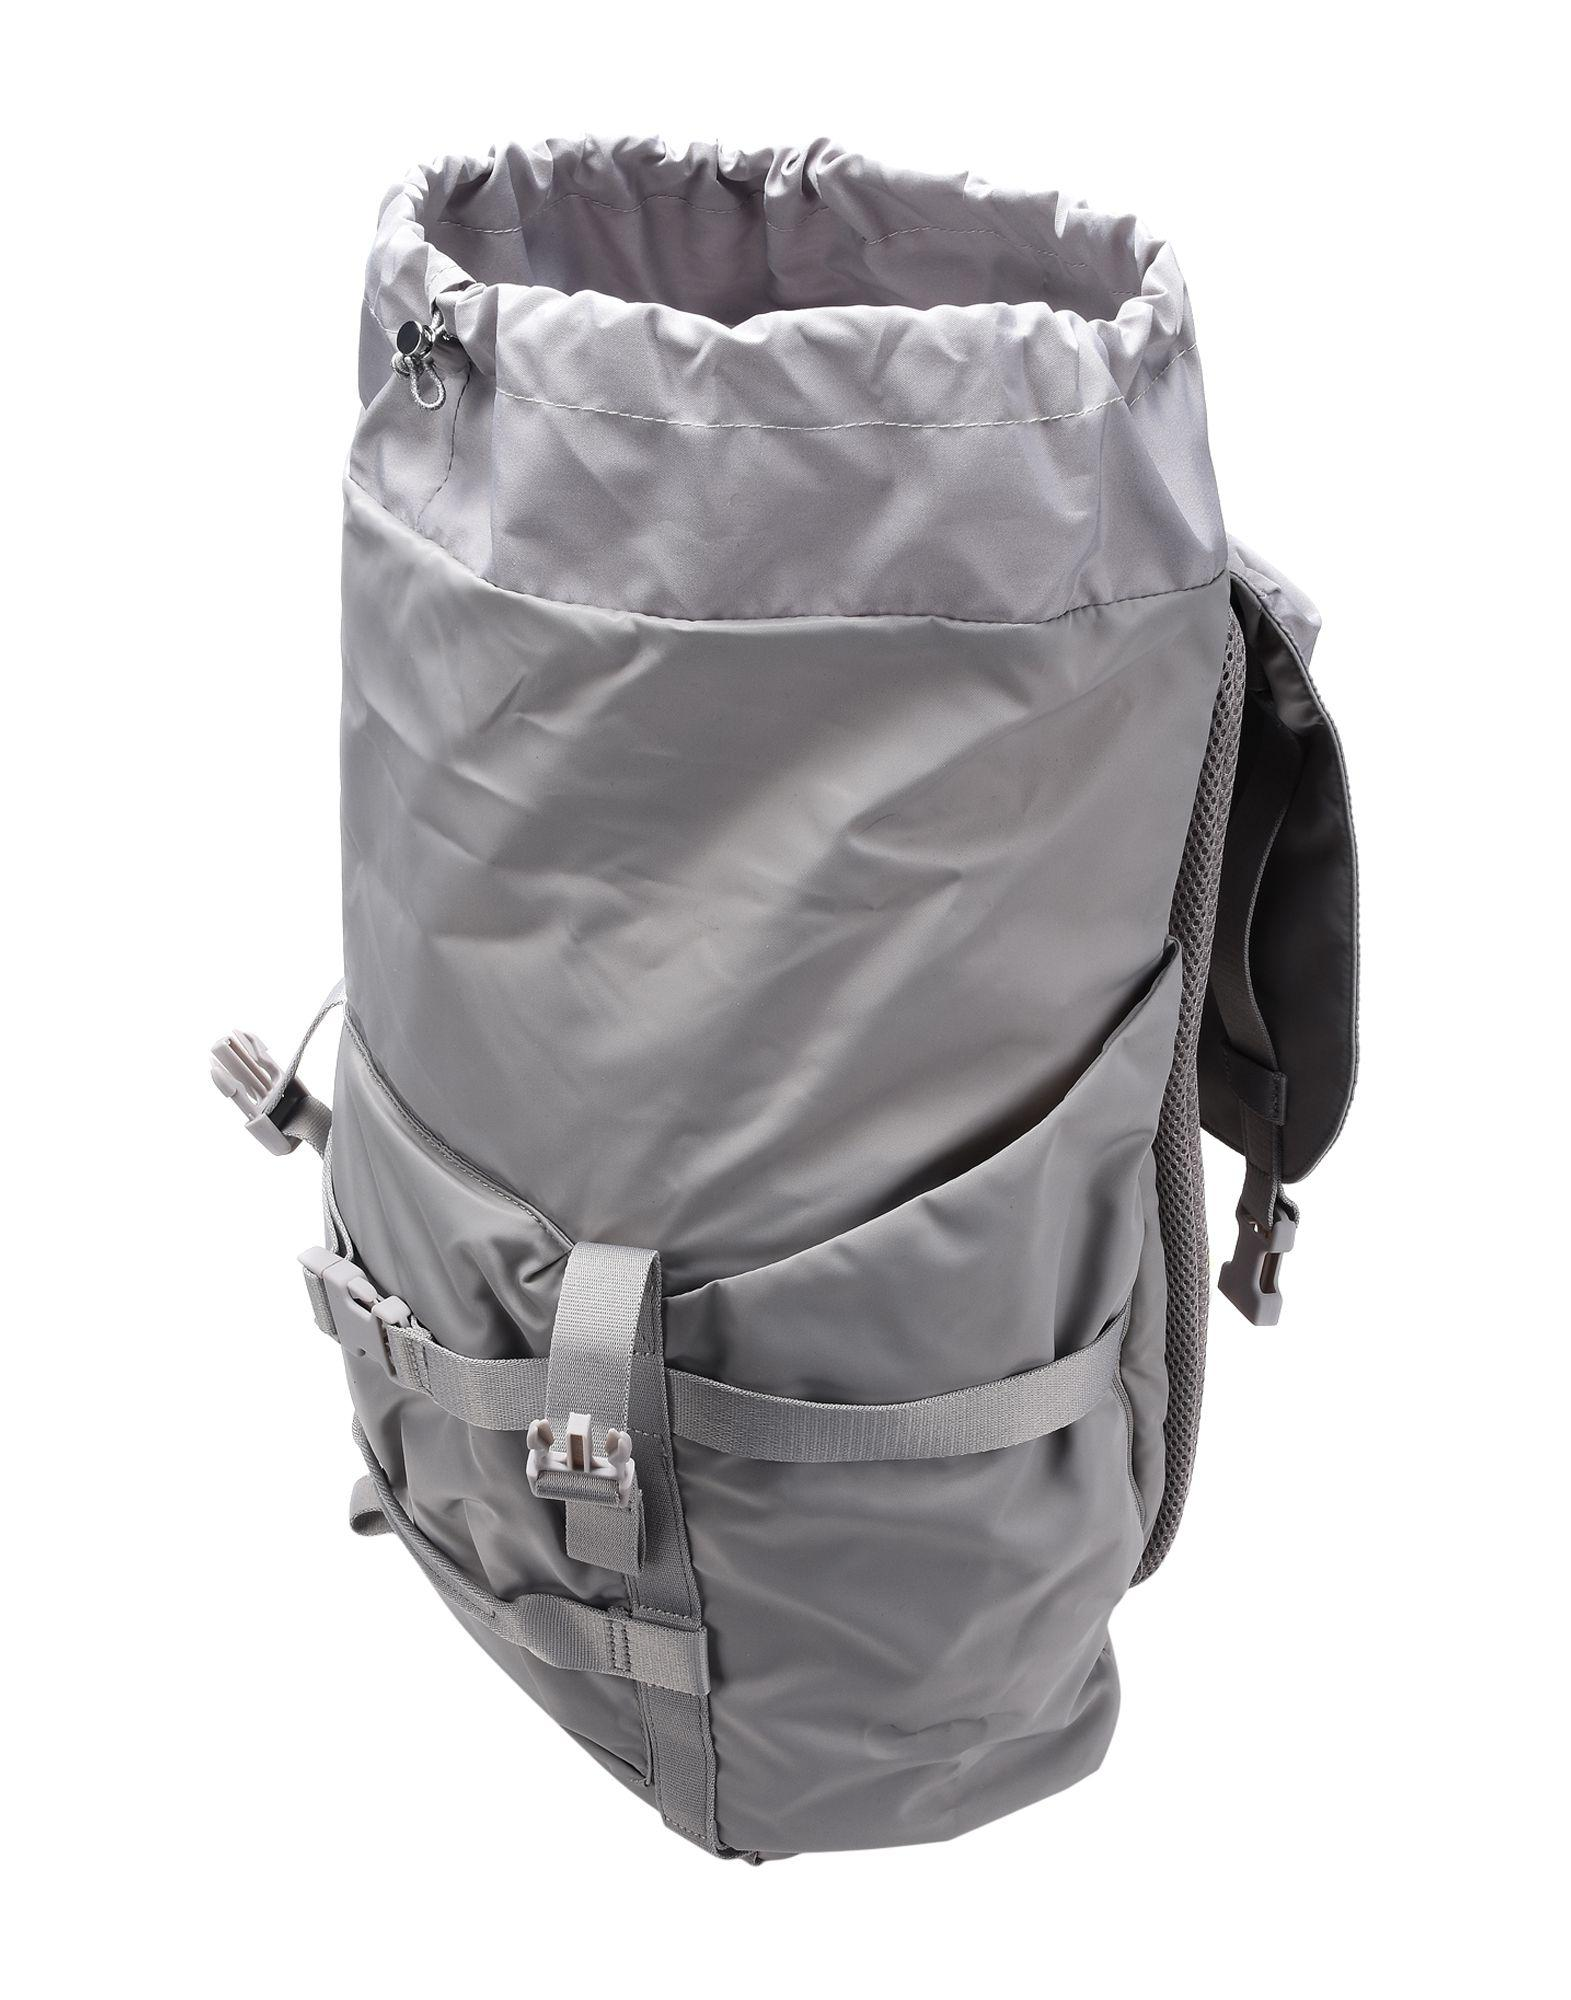 9032f910e39 Lyst - PUMA Backpacks & Bum Bags in Gray for Men